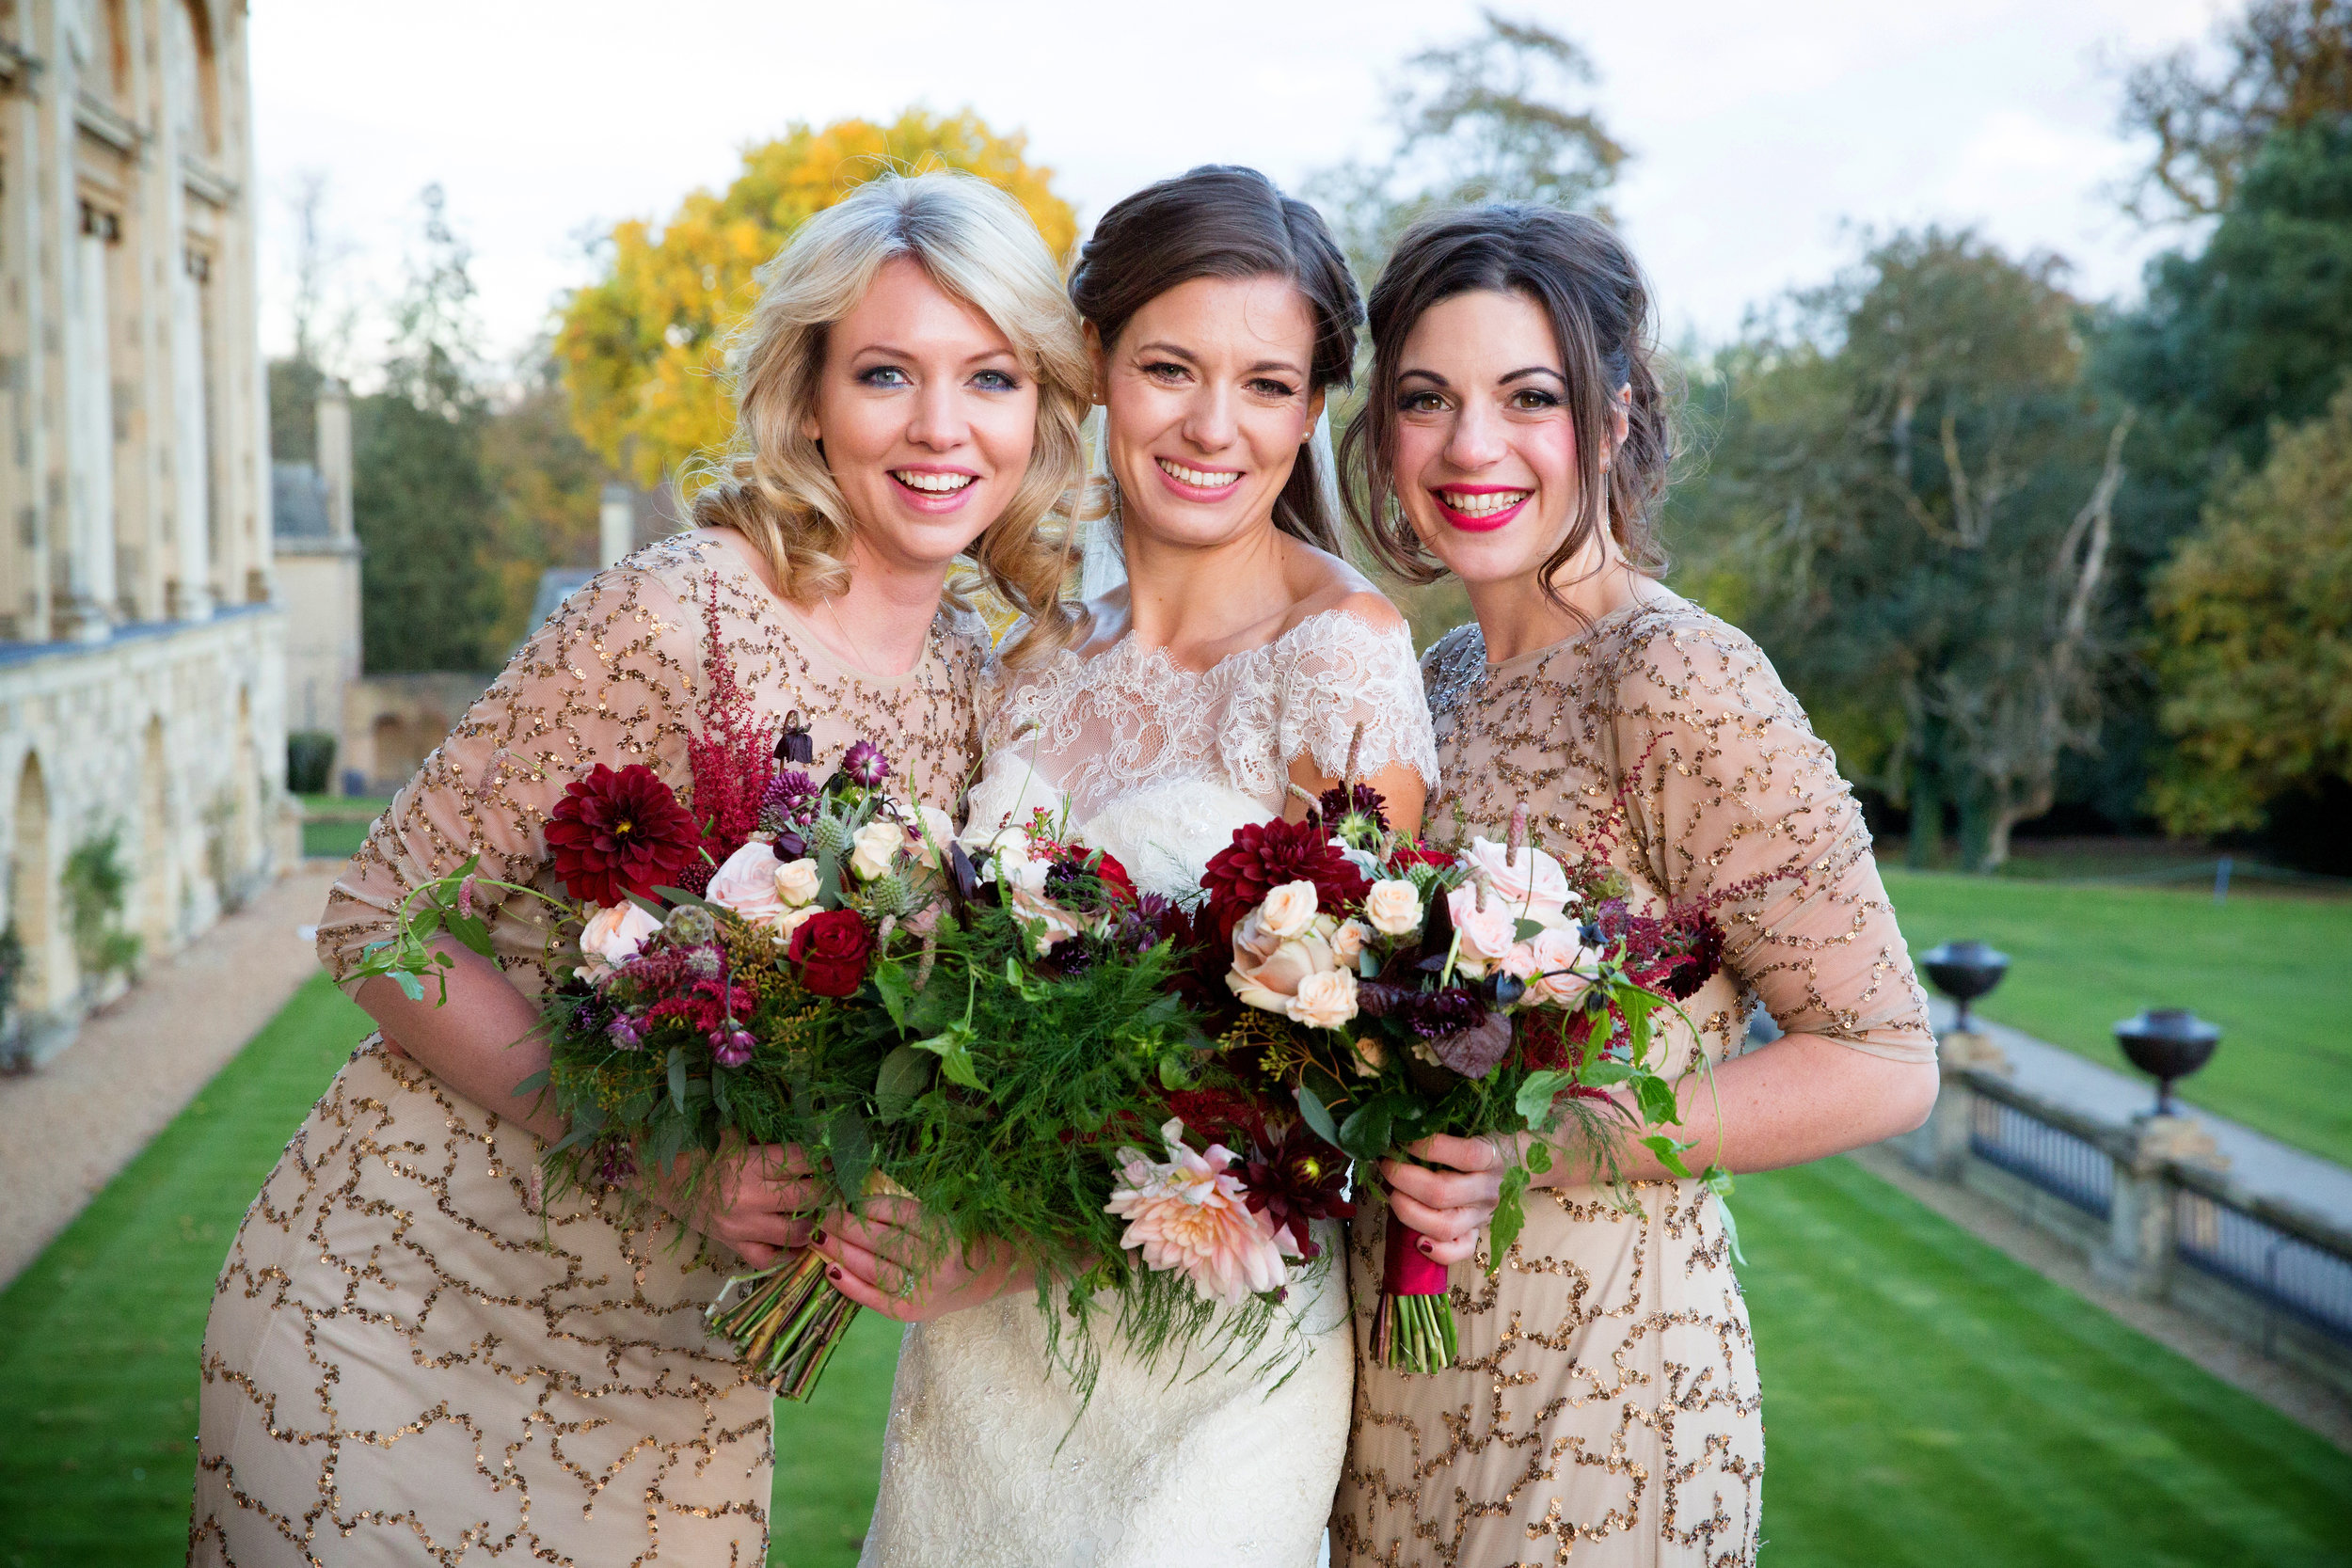 Autumn wedding at Stowe House, Buckinghamshire